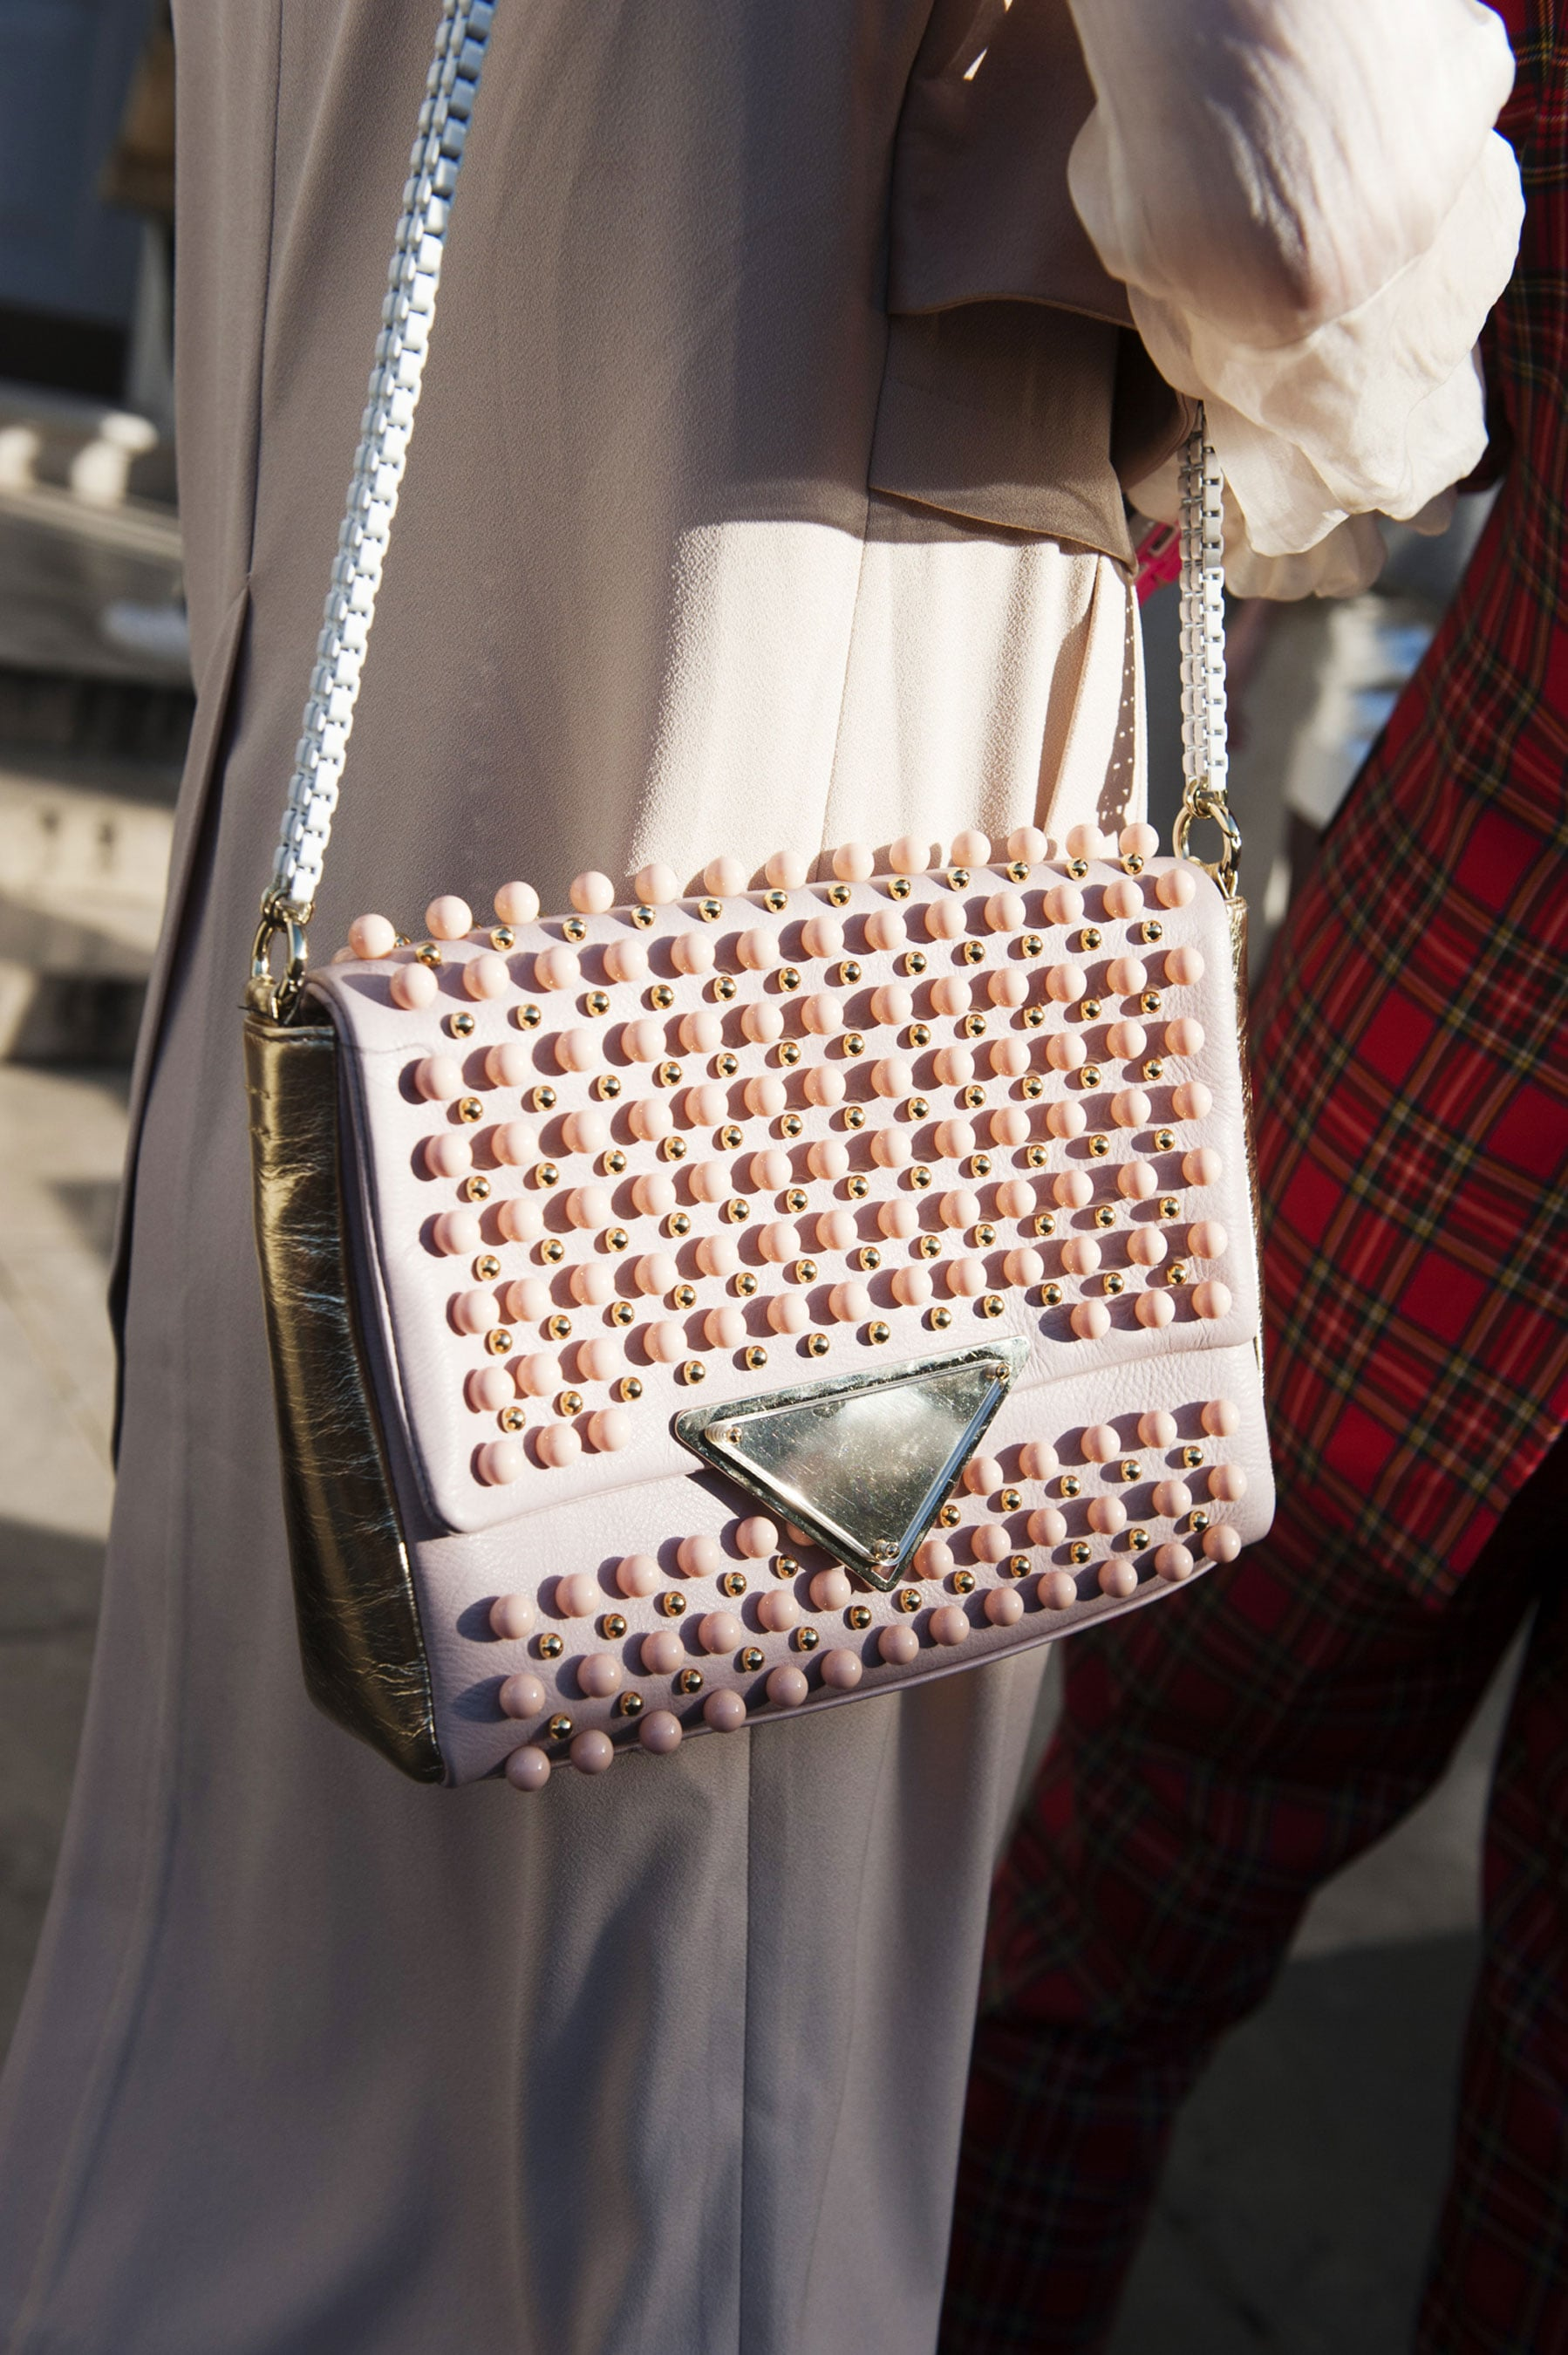 This bag deserves the spotlight.